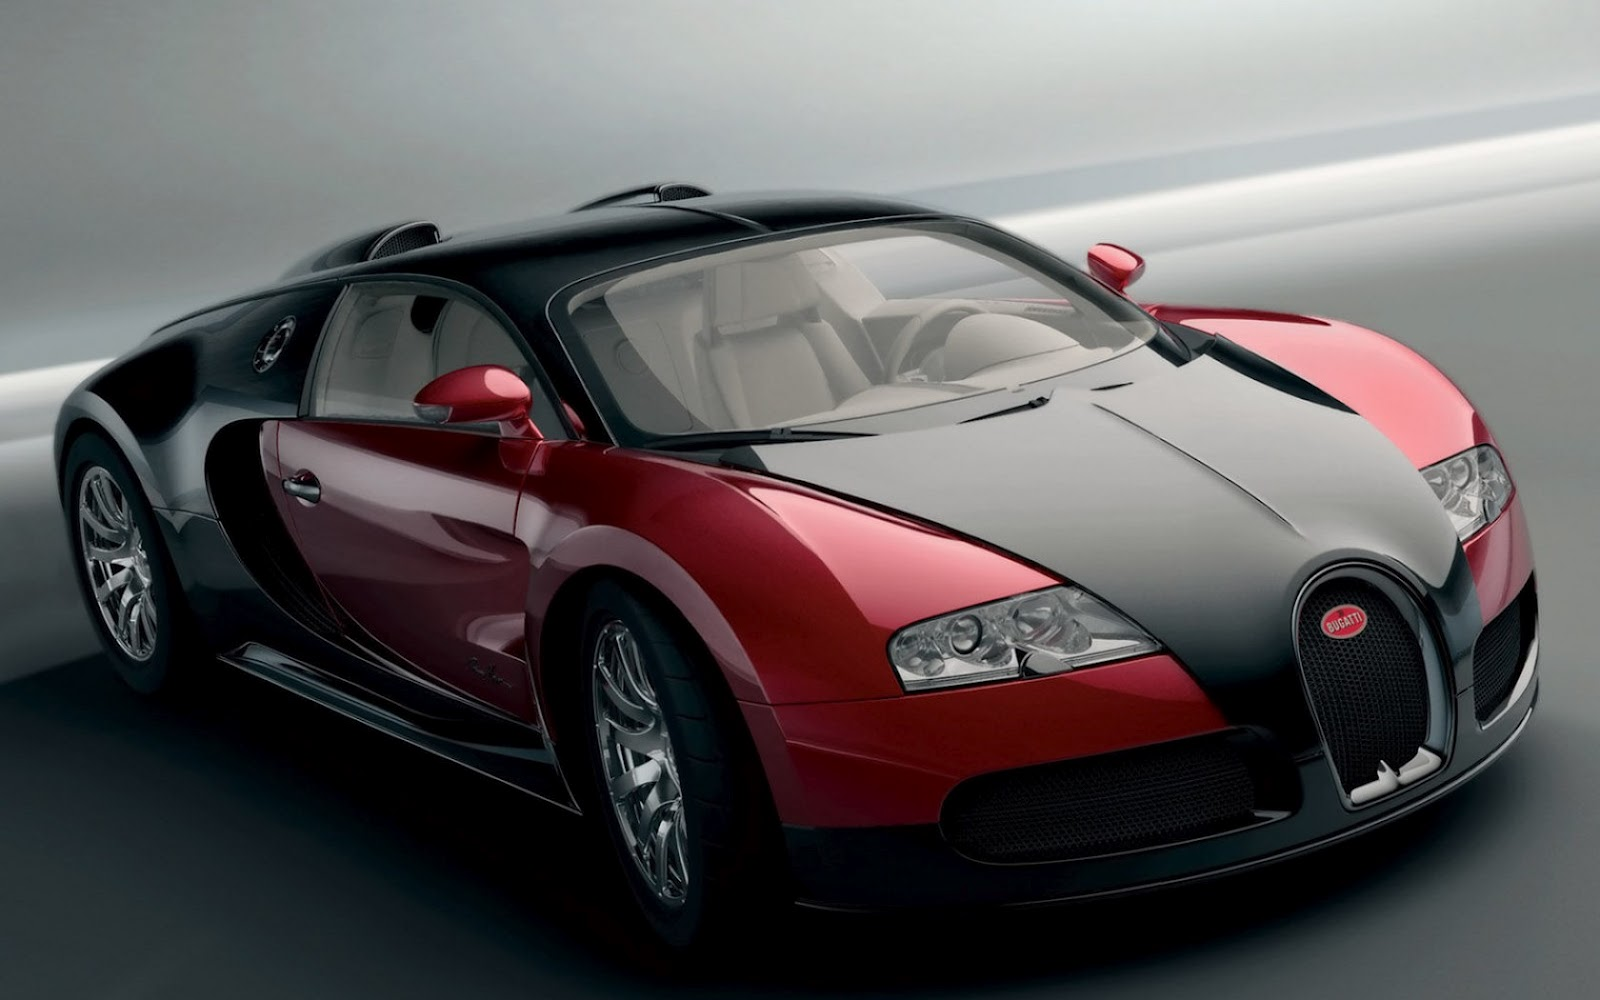 bugatti veyron red and black cool car wallpapers. Black Bedroom Furniture Sets. Home Design Ideas